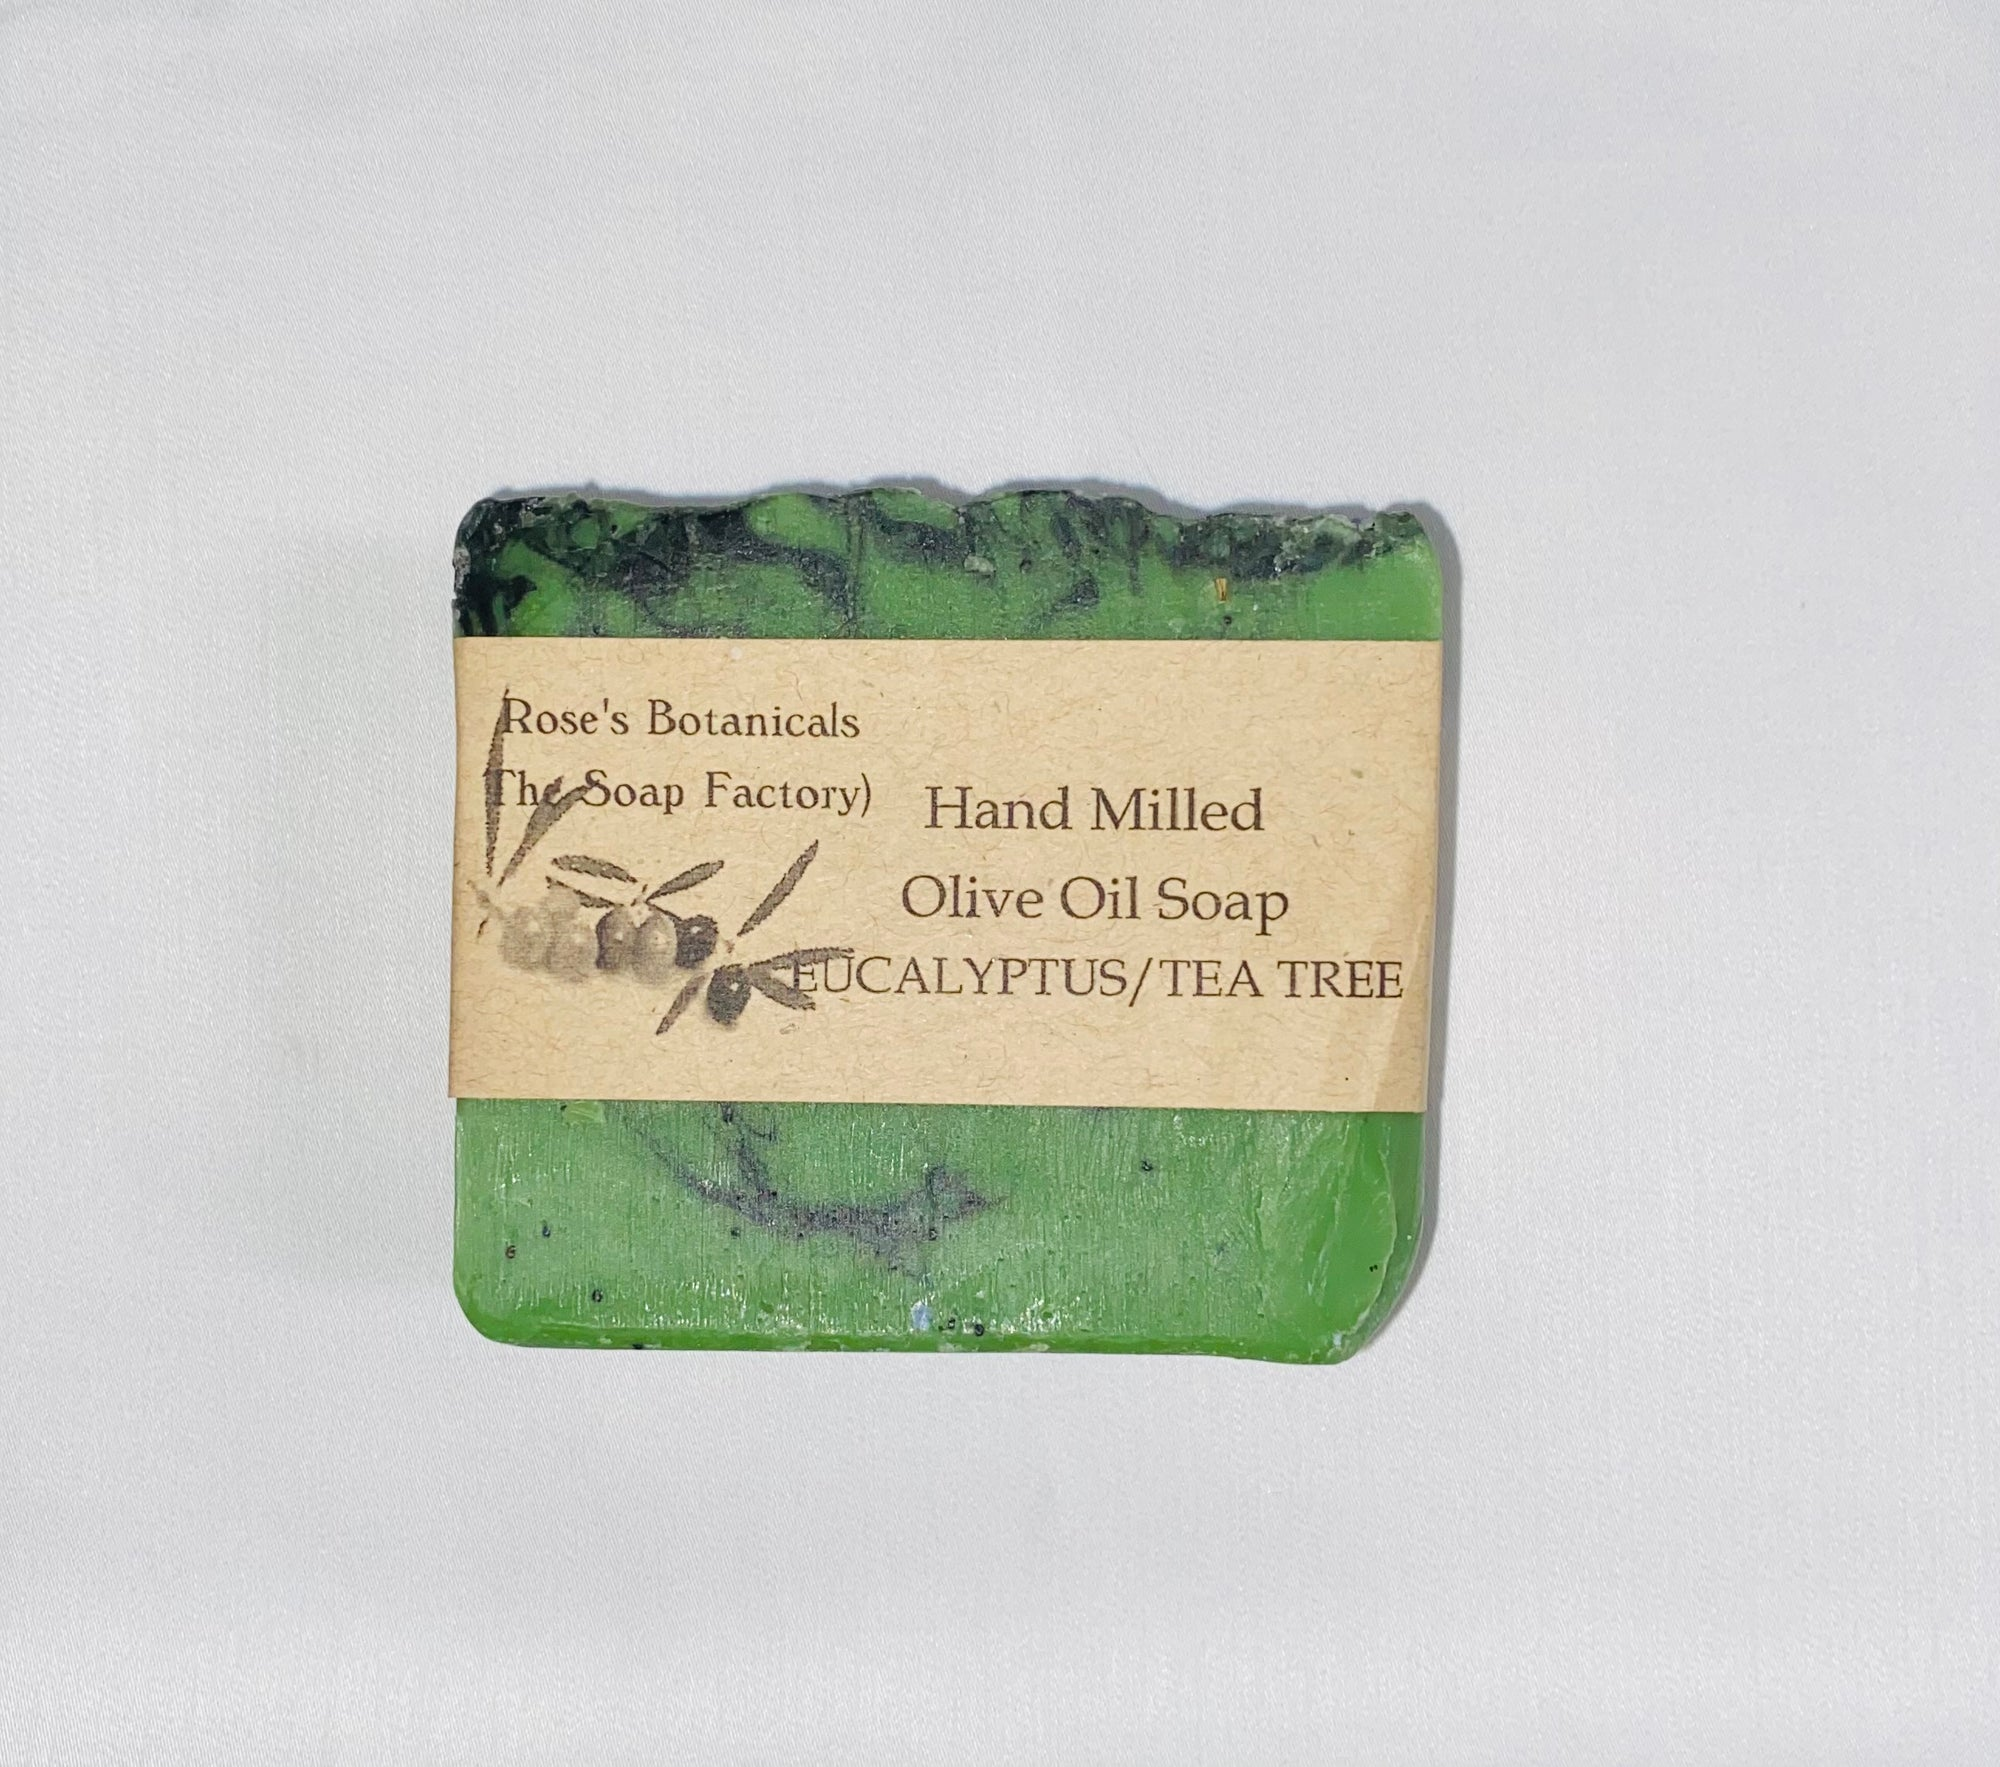 Hand Milled Olive Oil Soap